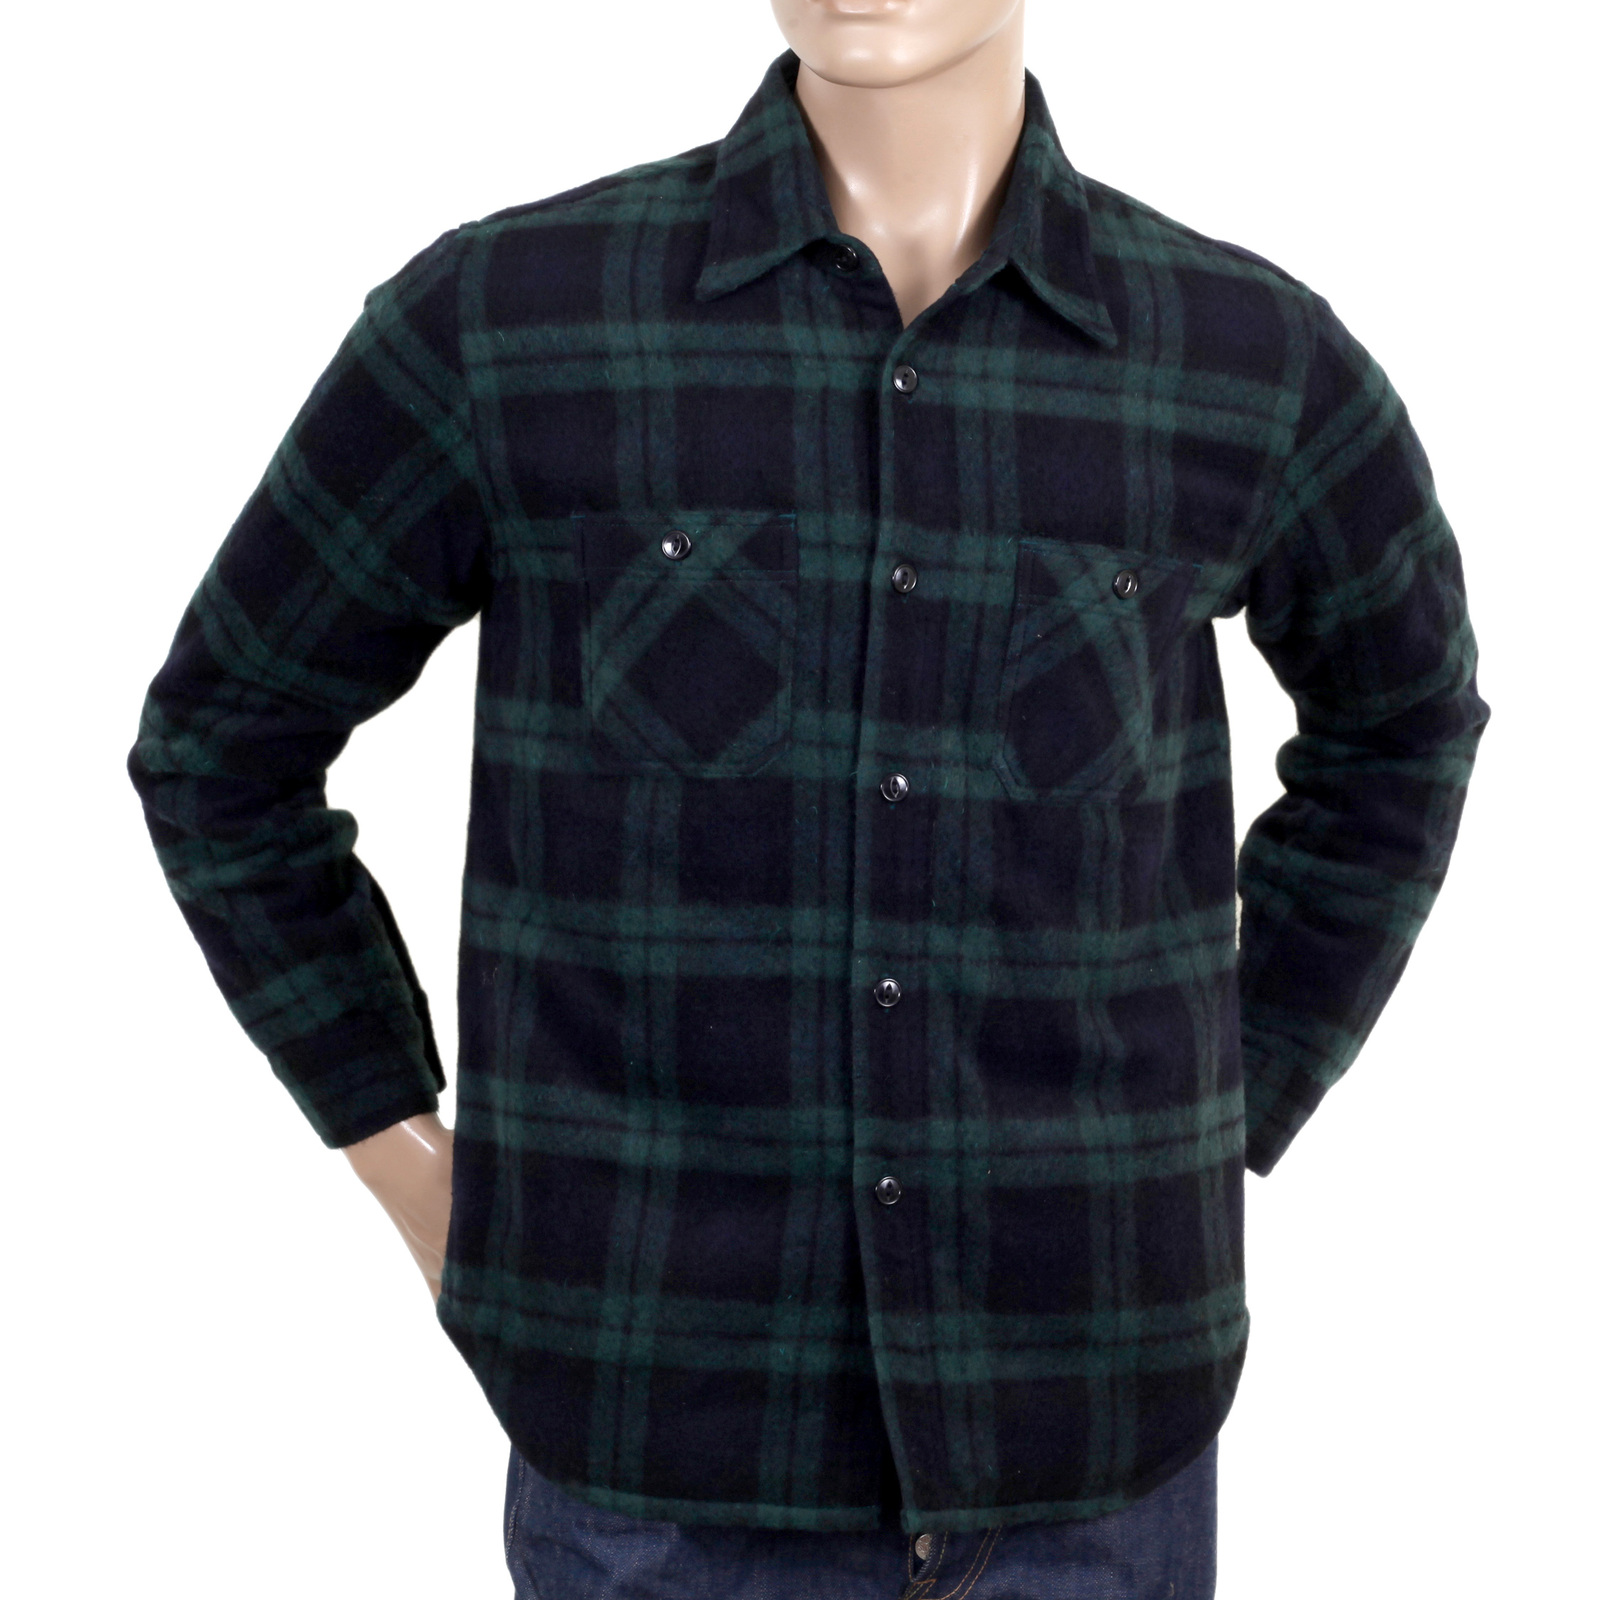 6a70982bb2d Green Wool Mix SC13178 Long Sleeve Polyester Filled Checked CPO Overshirt  with Quilted Inner Lining CANE4464